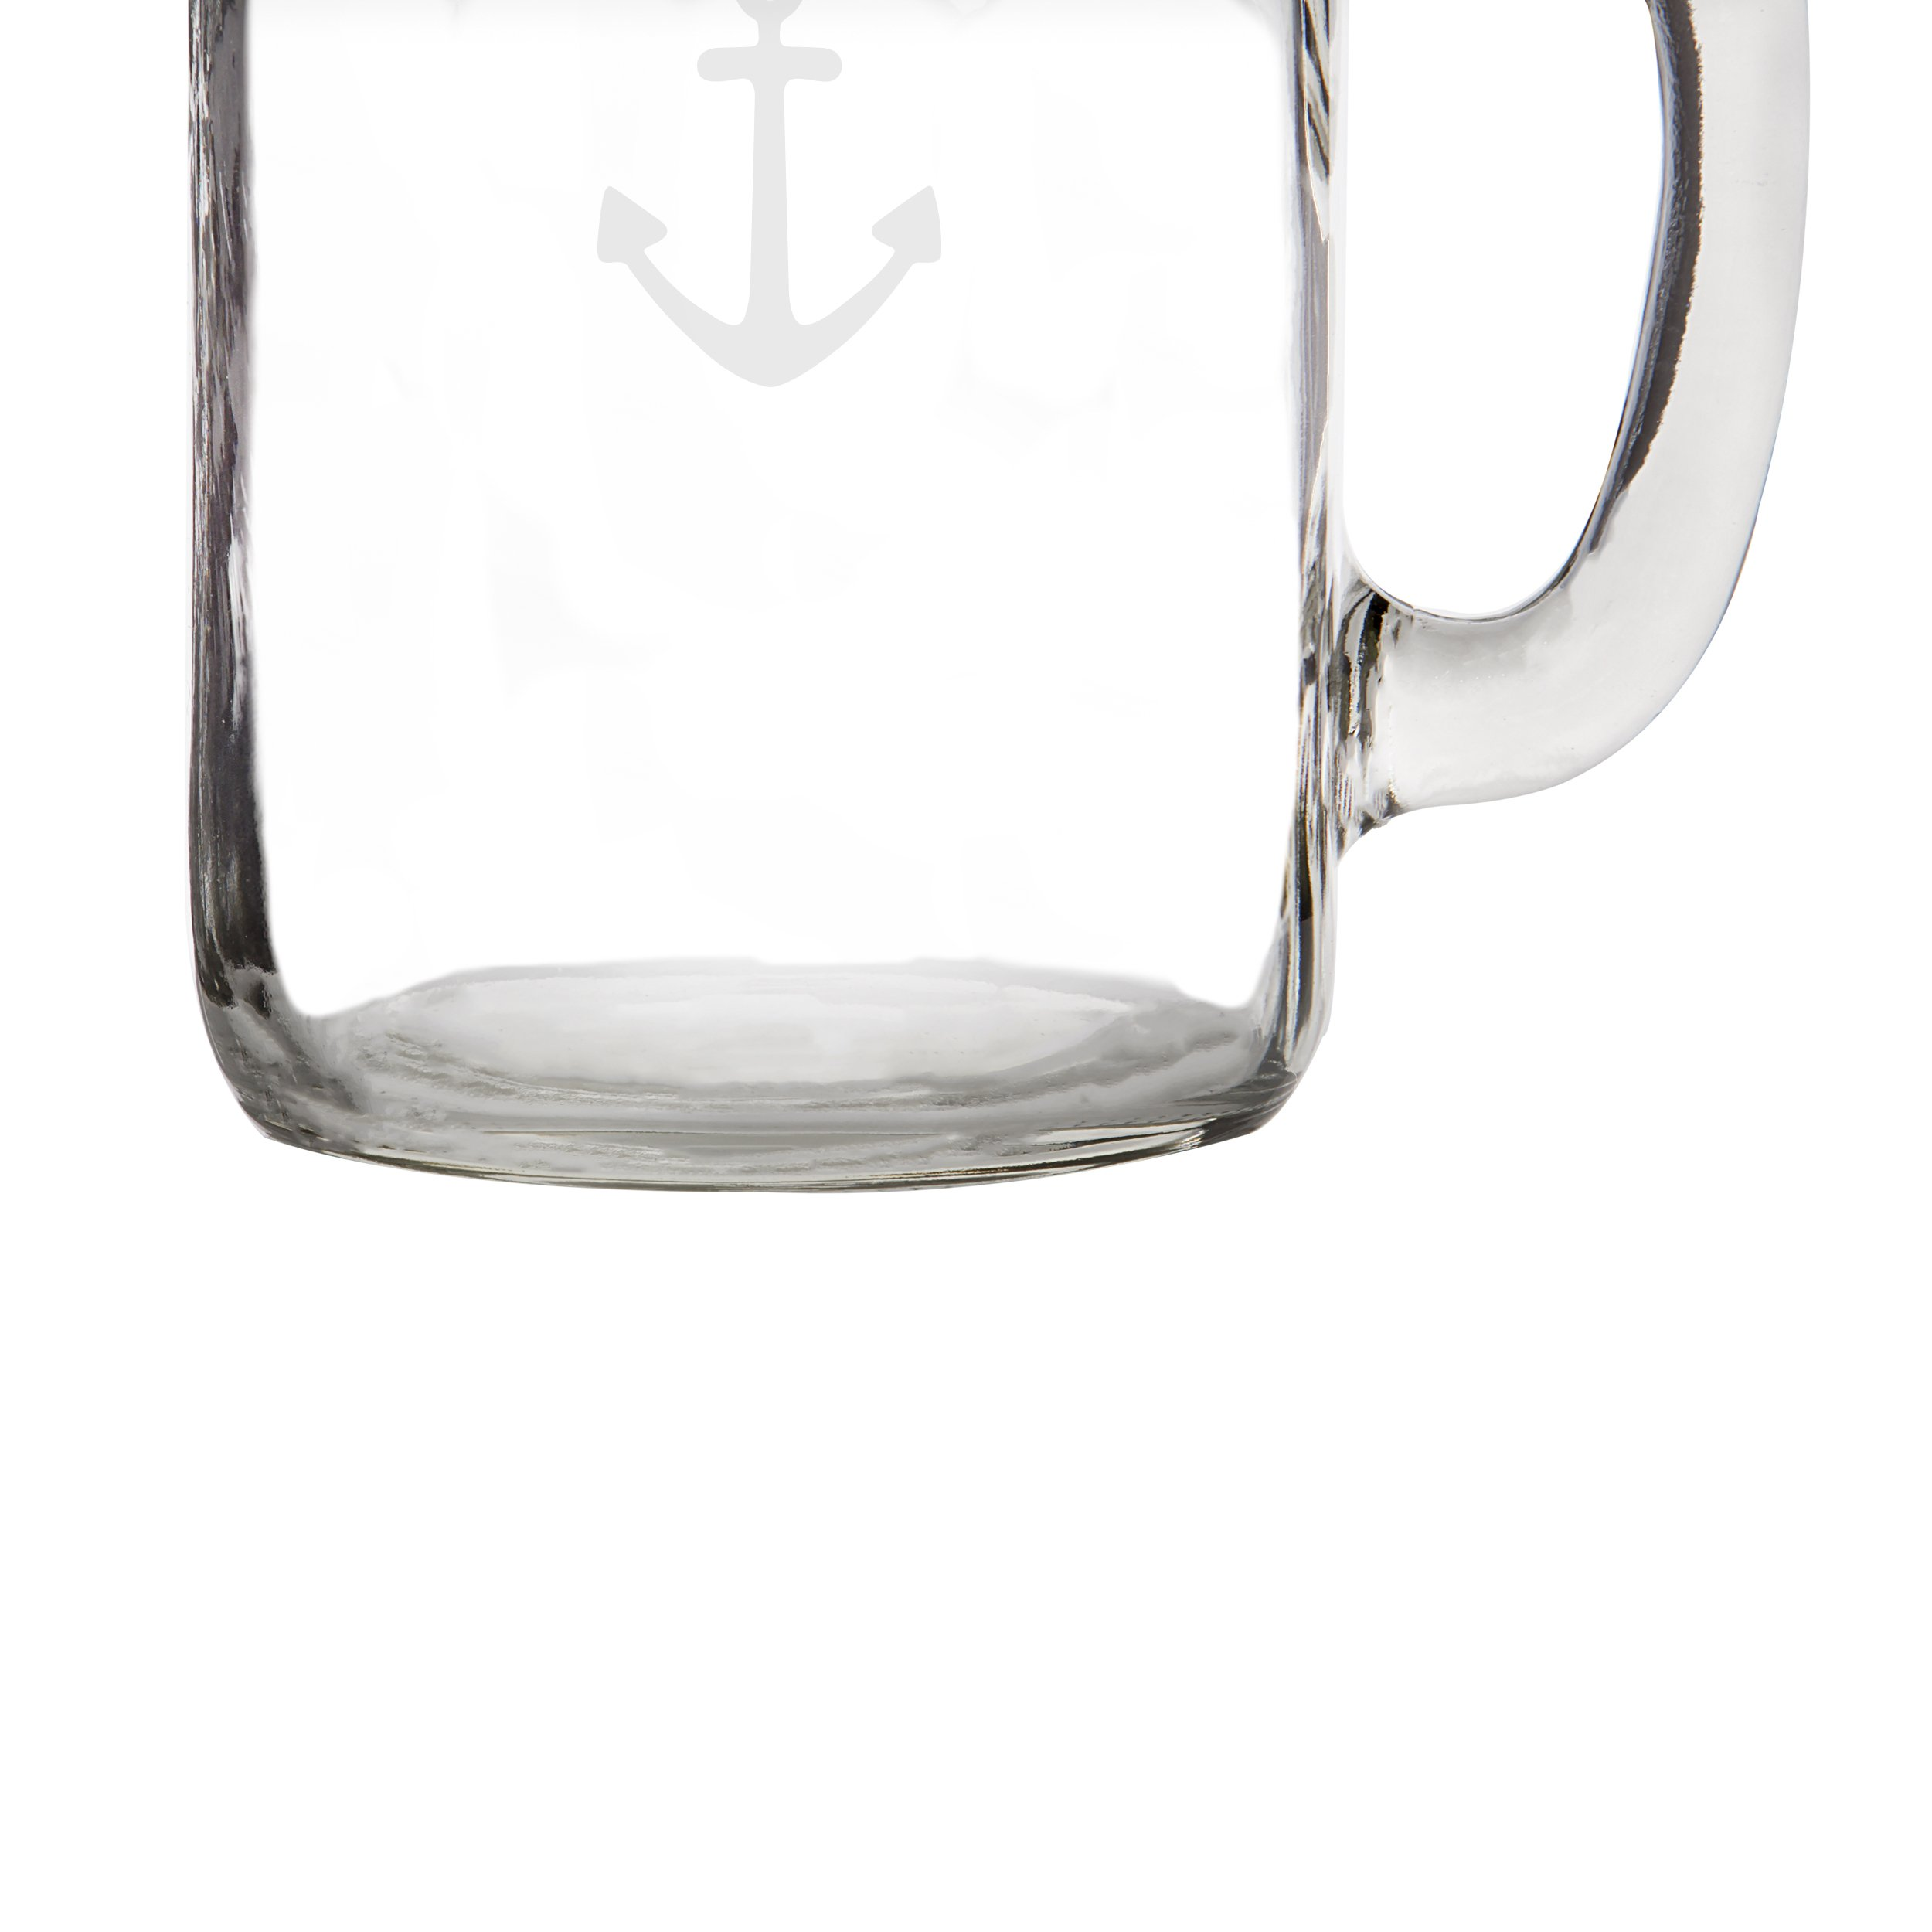 Cathy's Concepts CCA1190 Anchor Old Fashioned Drinking Jars Set Of 4 by Cathy's Concepts (Image #17)